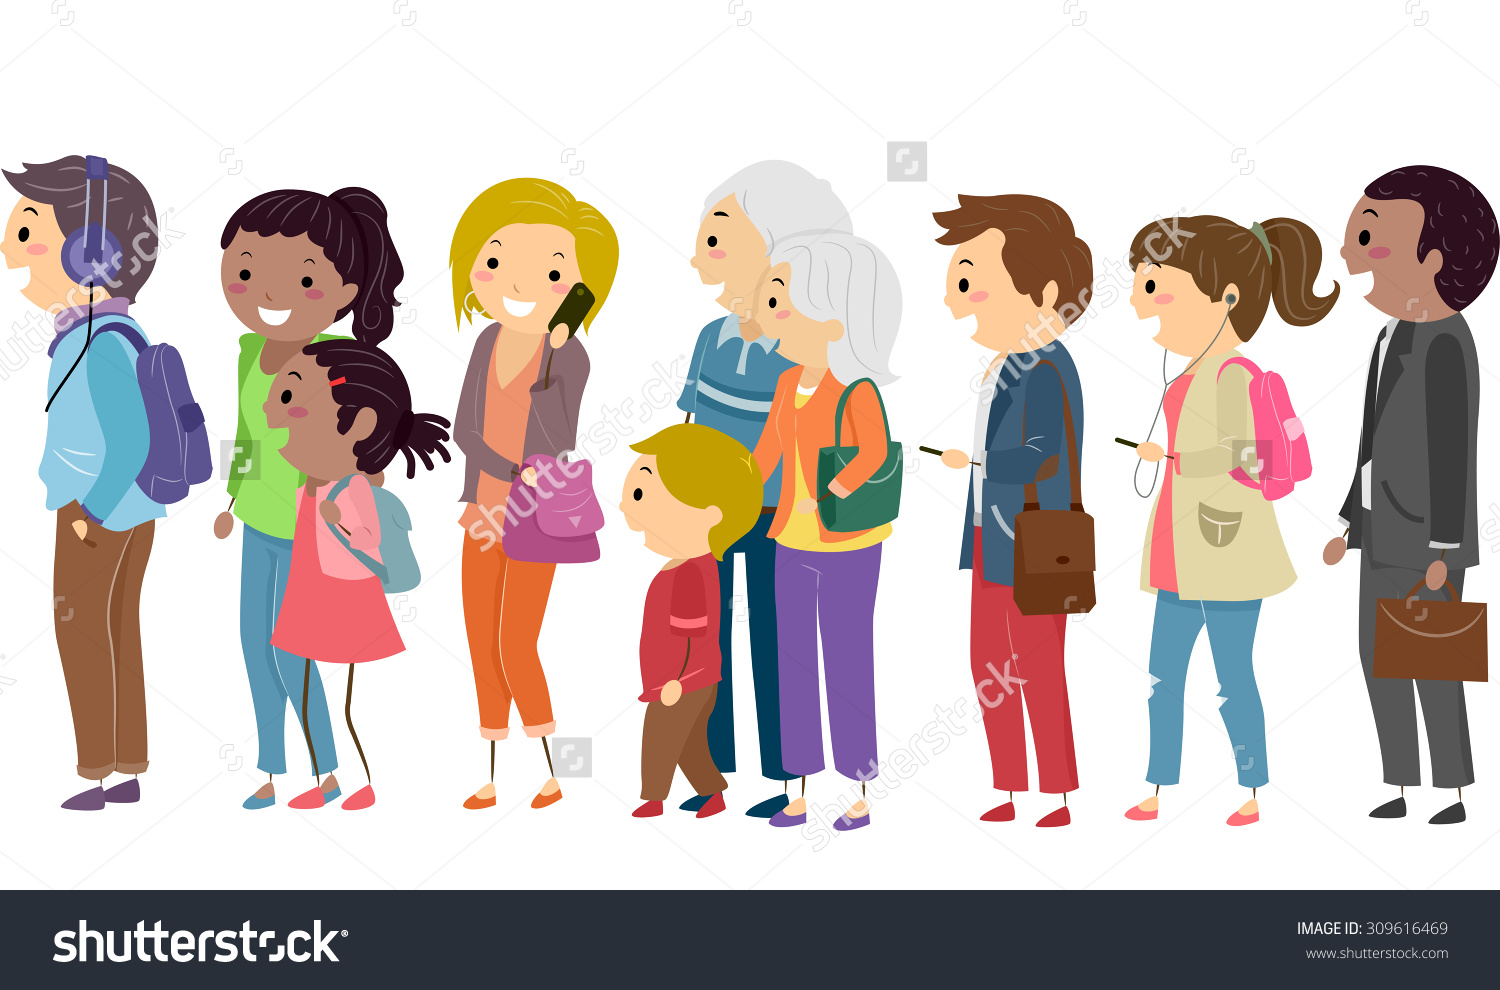 Waiting In Line People Clip Art Flash Wiring Diagrams M66t Melody Generator A Kids Transparent Rh Plus Com